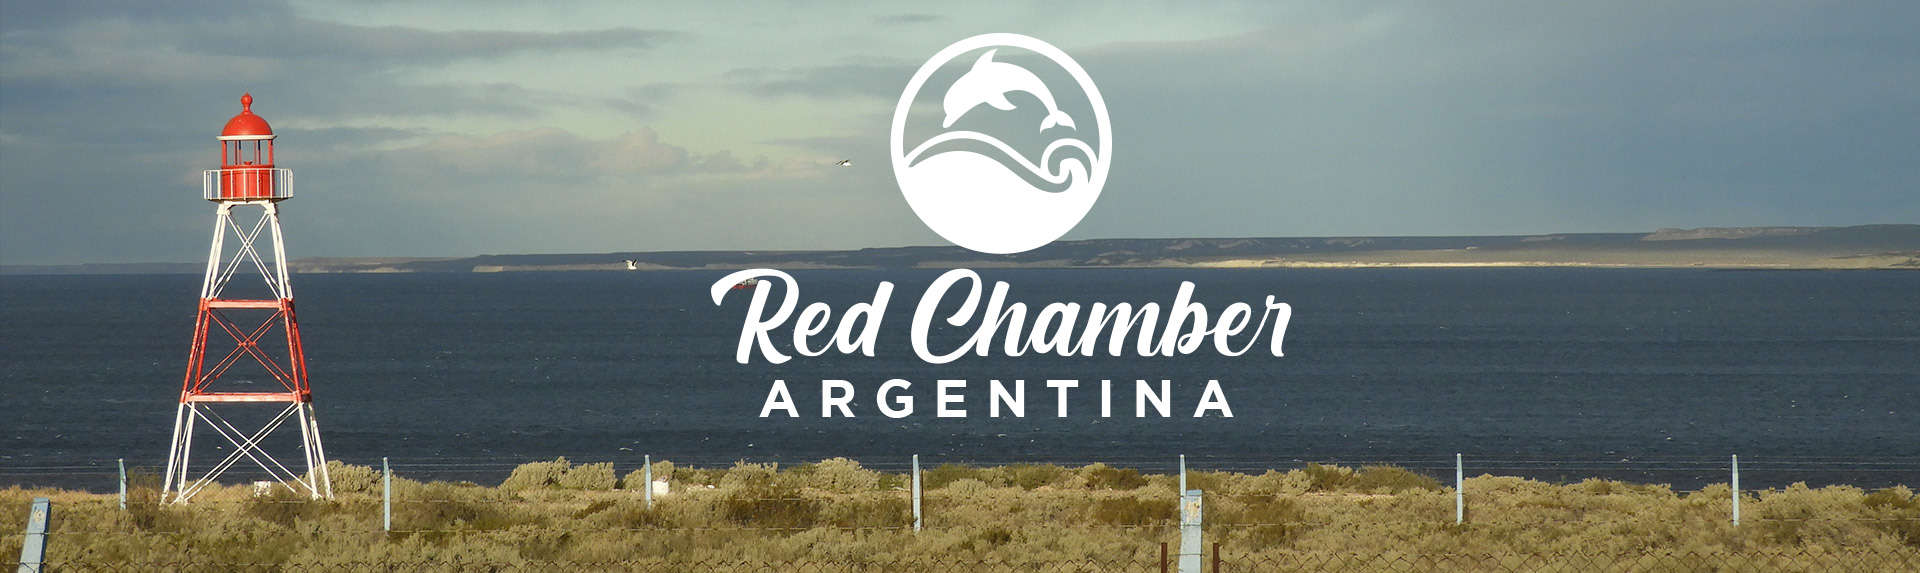 Red Chamber Argentina